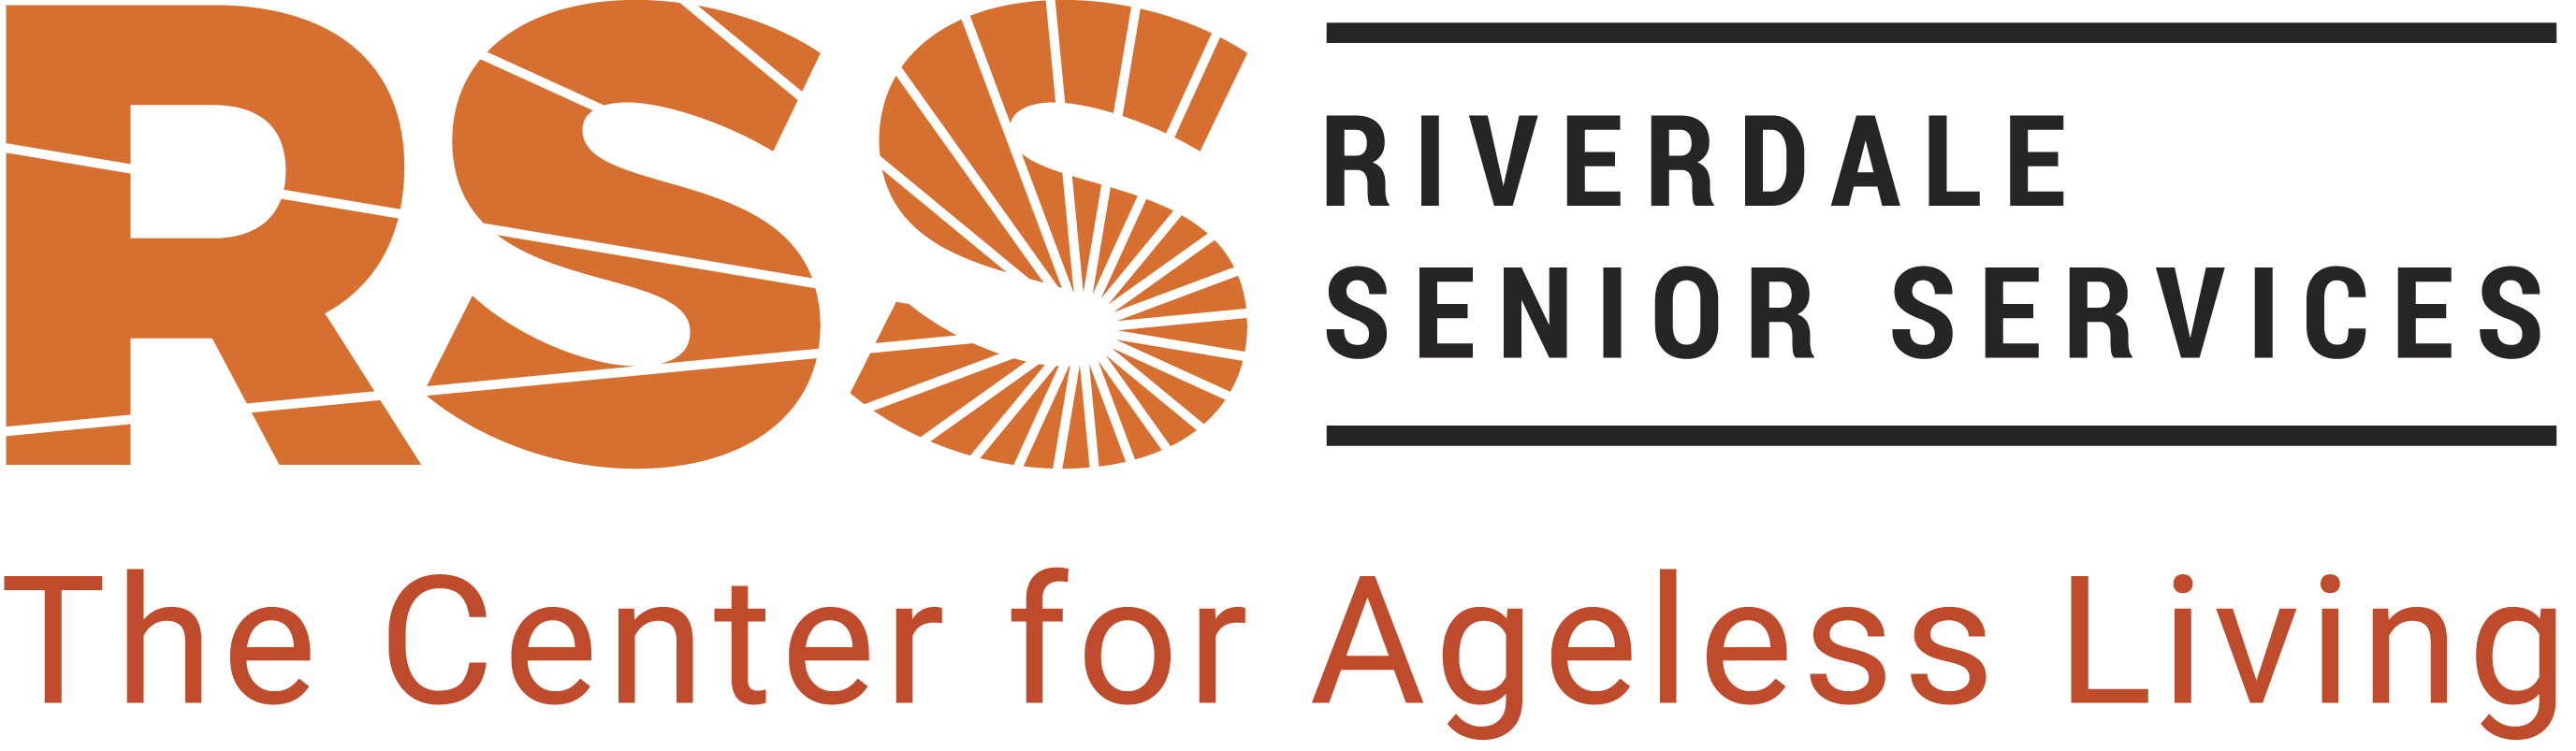 Riverdale Senior Services Is Now RSS